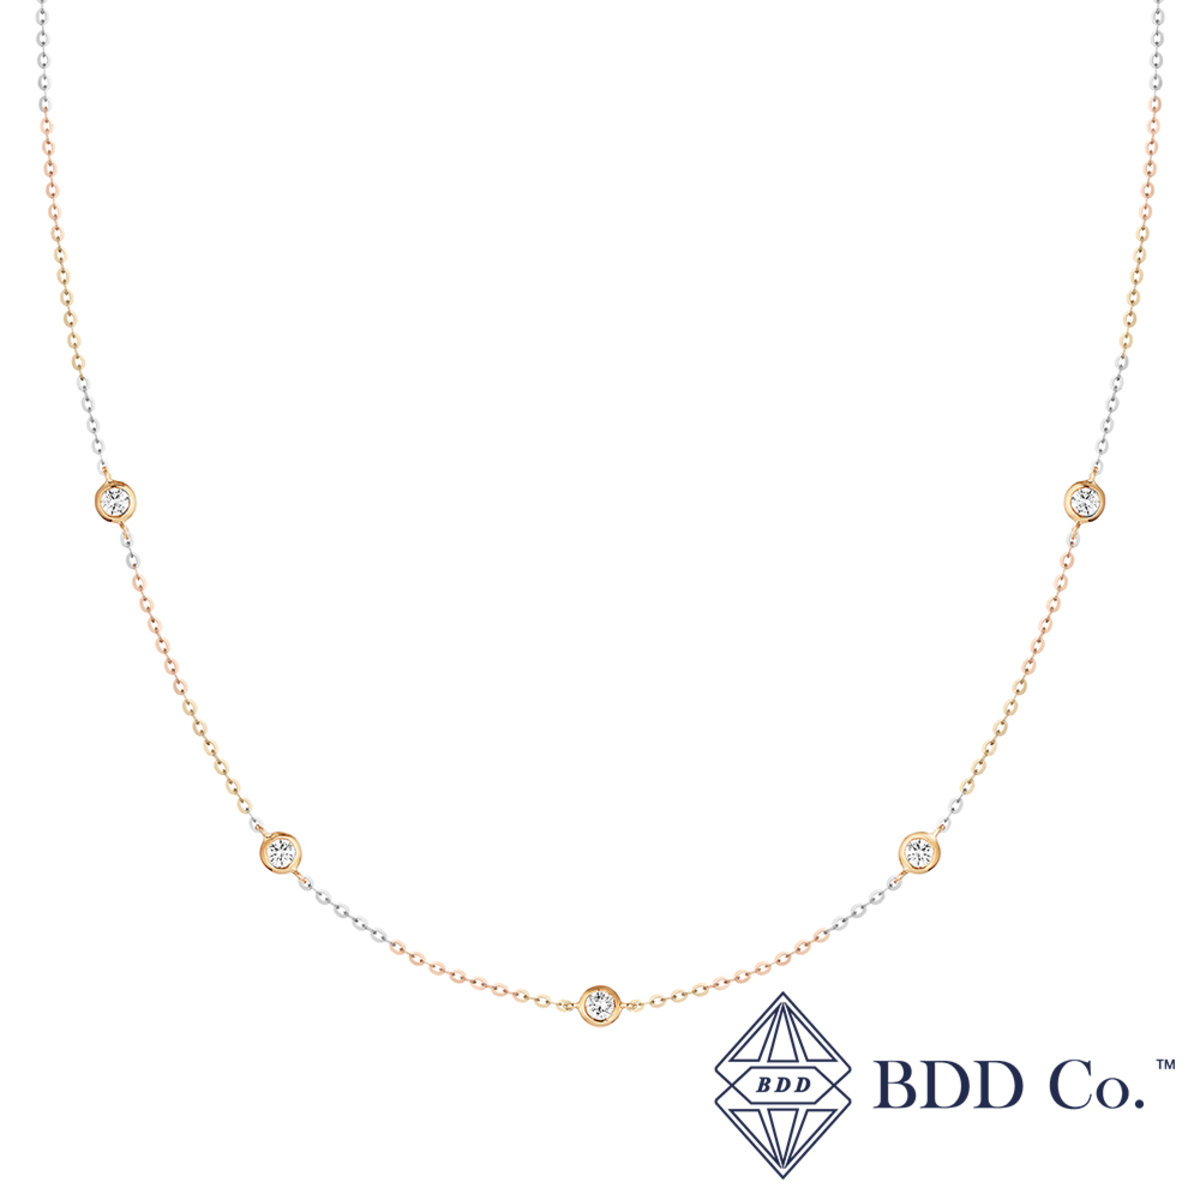 f1a49d254be8d2 14k Yellow Gold Bezel-Set Stationed Diamond Necklace (0.461 ct. tw.)